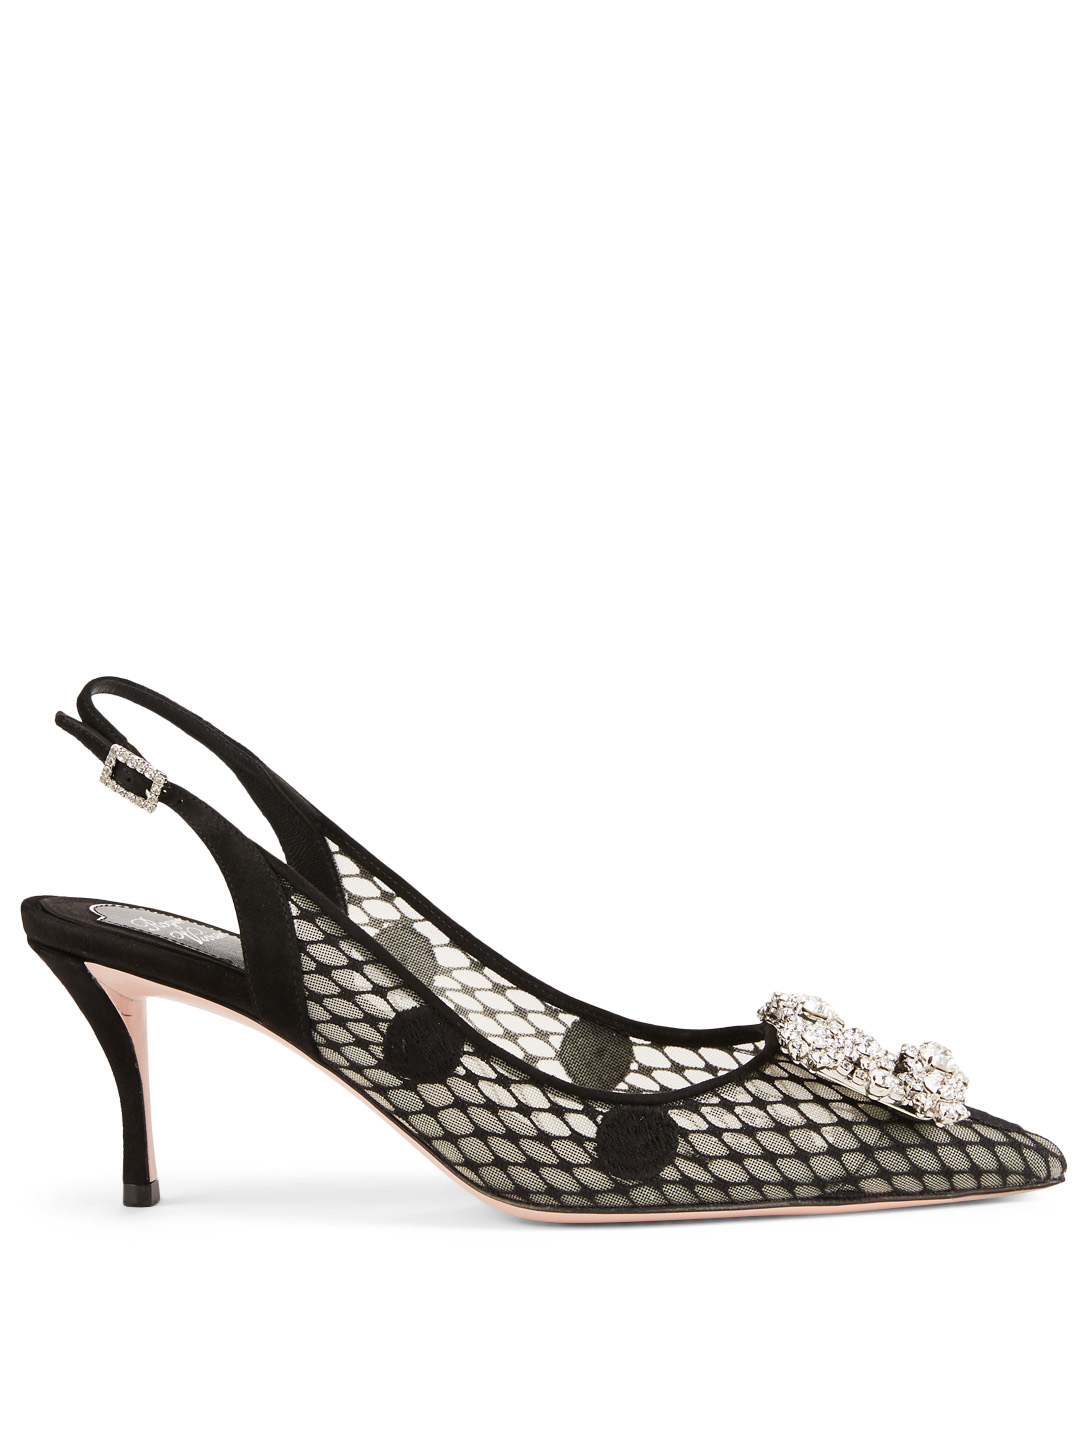 ROGER VIVIER Flower Strass Polka Dot Mesh Slingback Pumps Women's Black